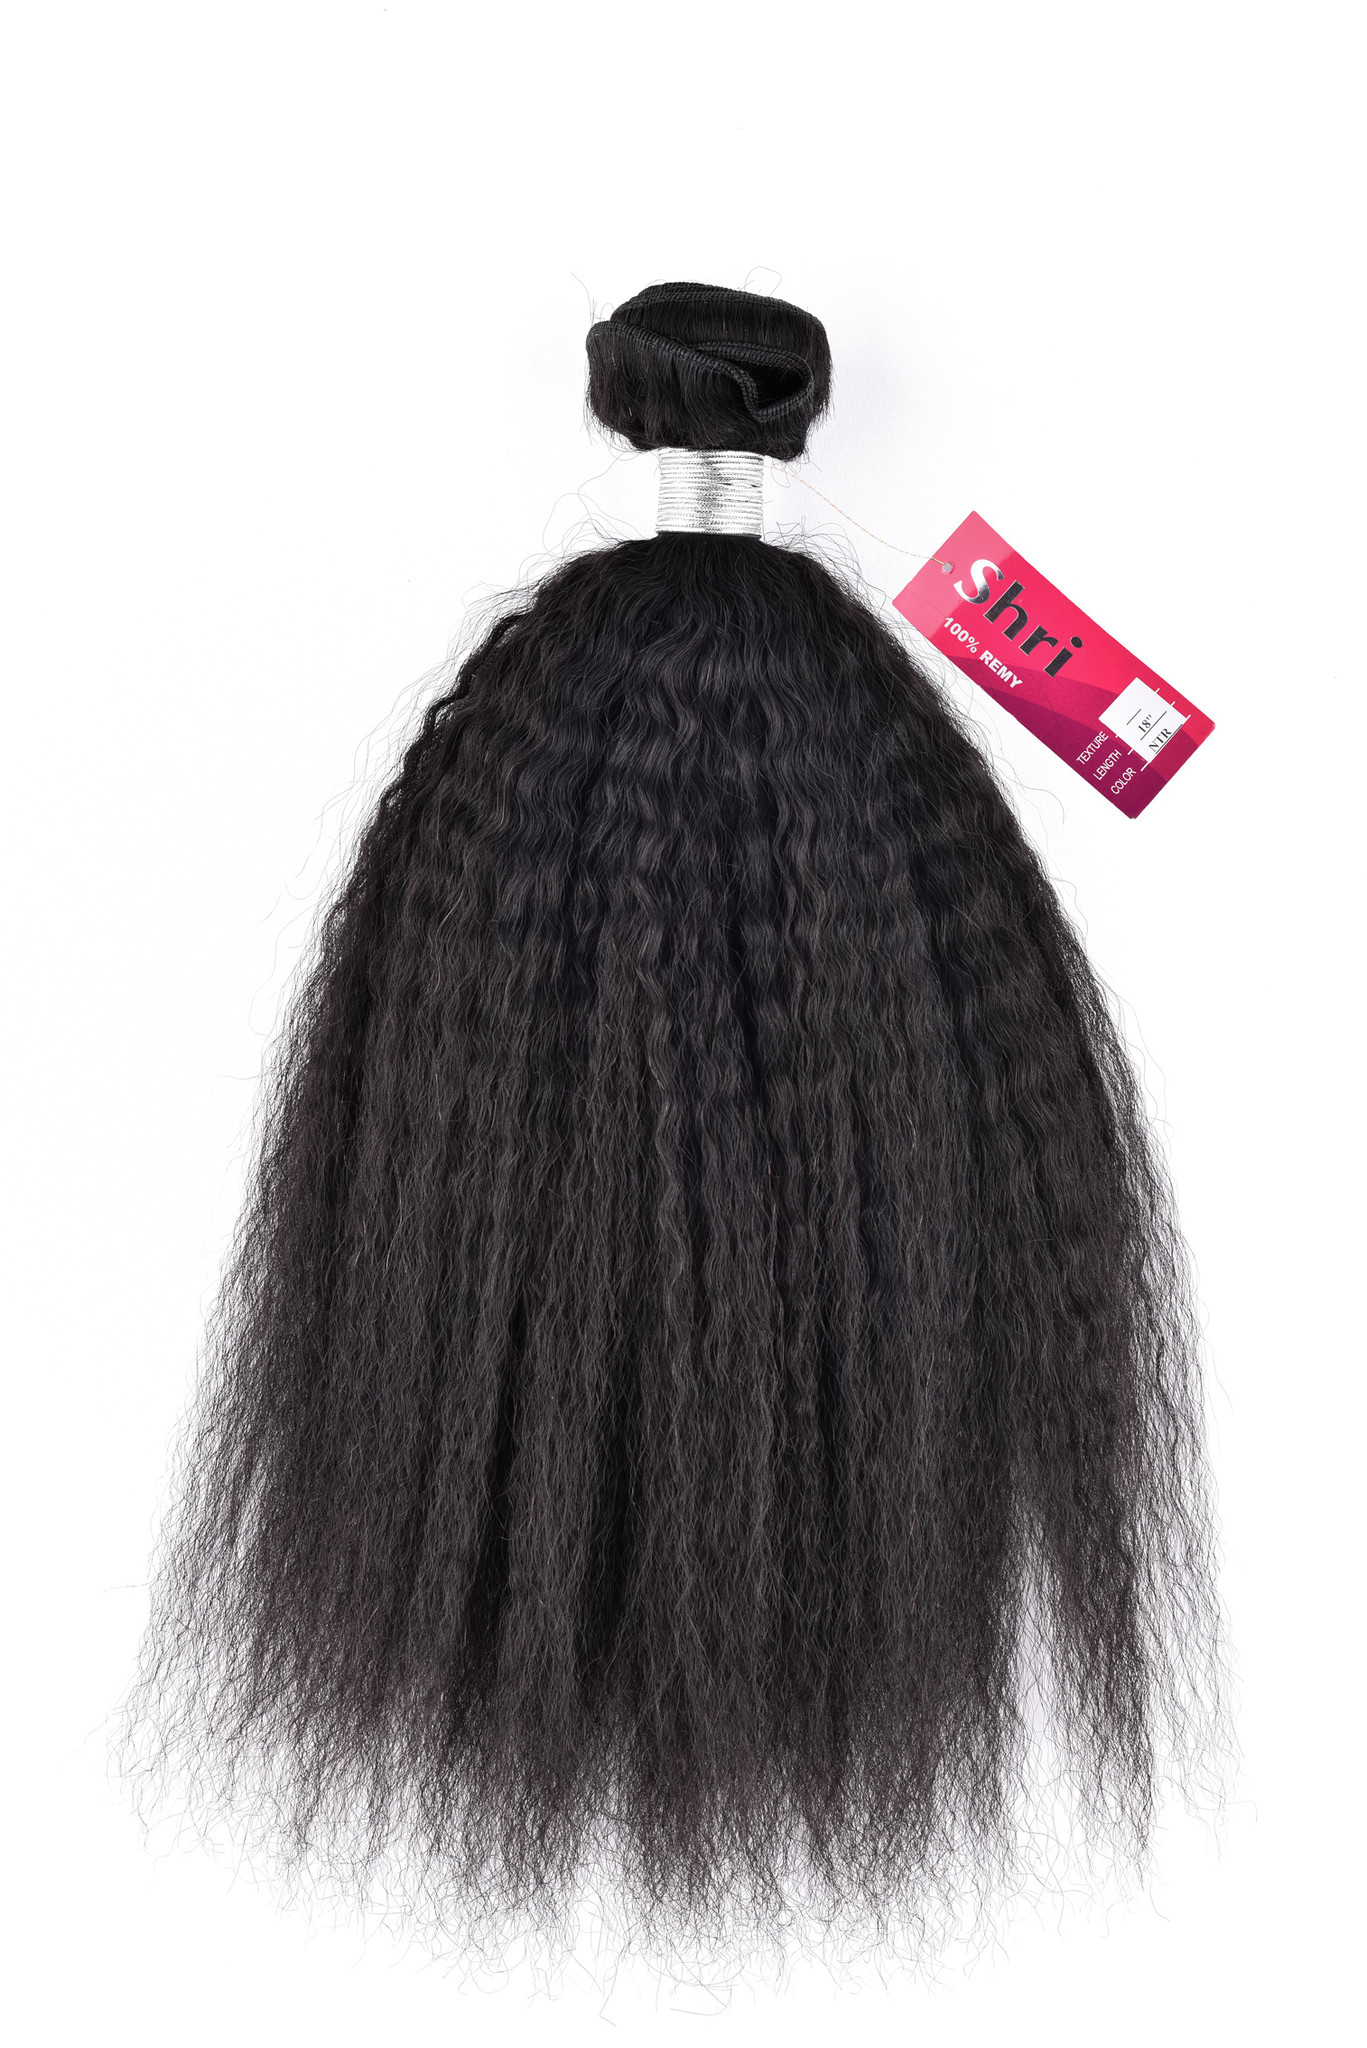 Shri SilverFox Indian Shri Weave - Kinky Straight